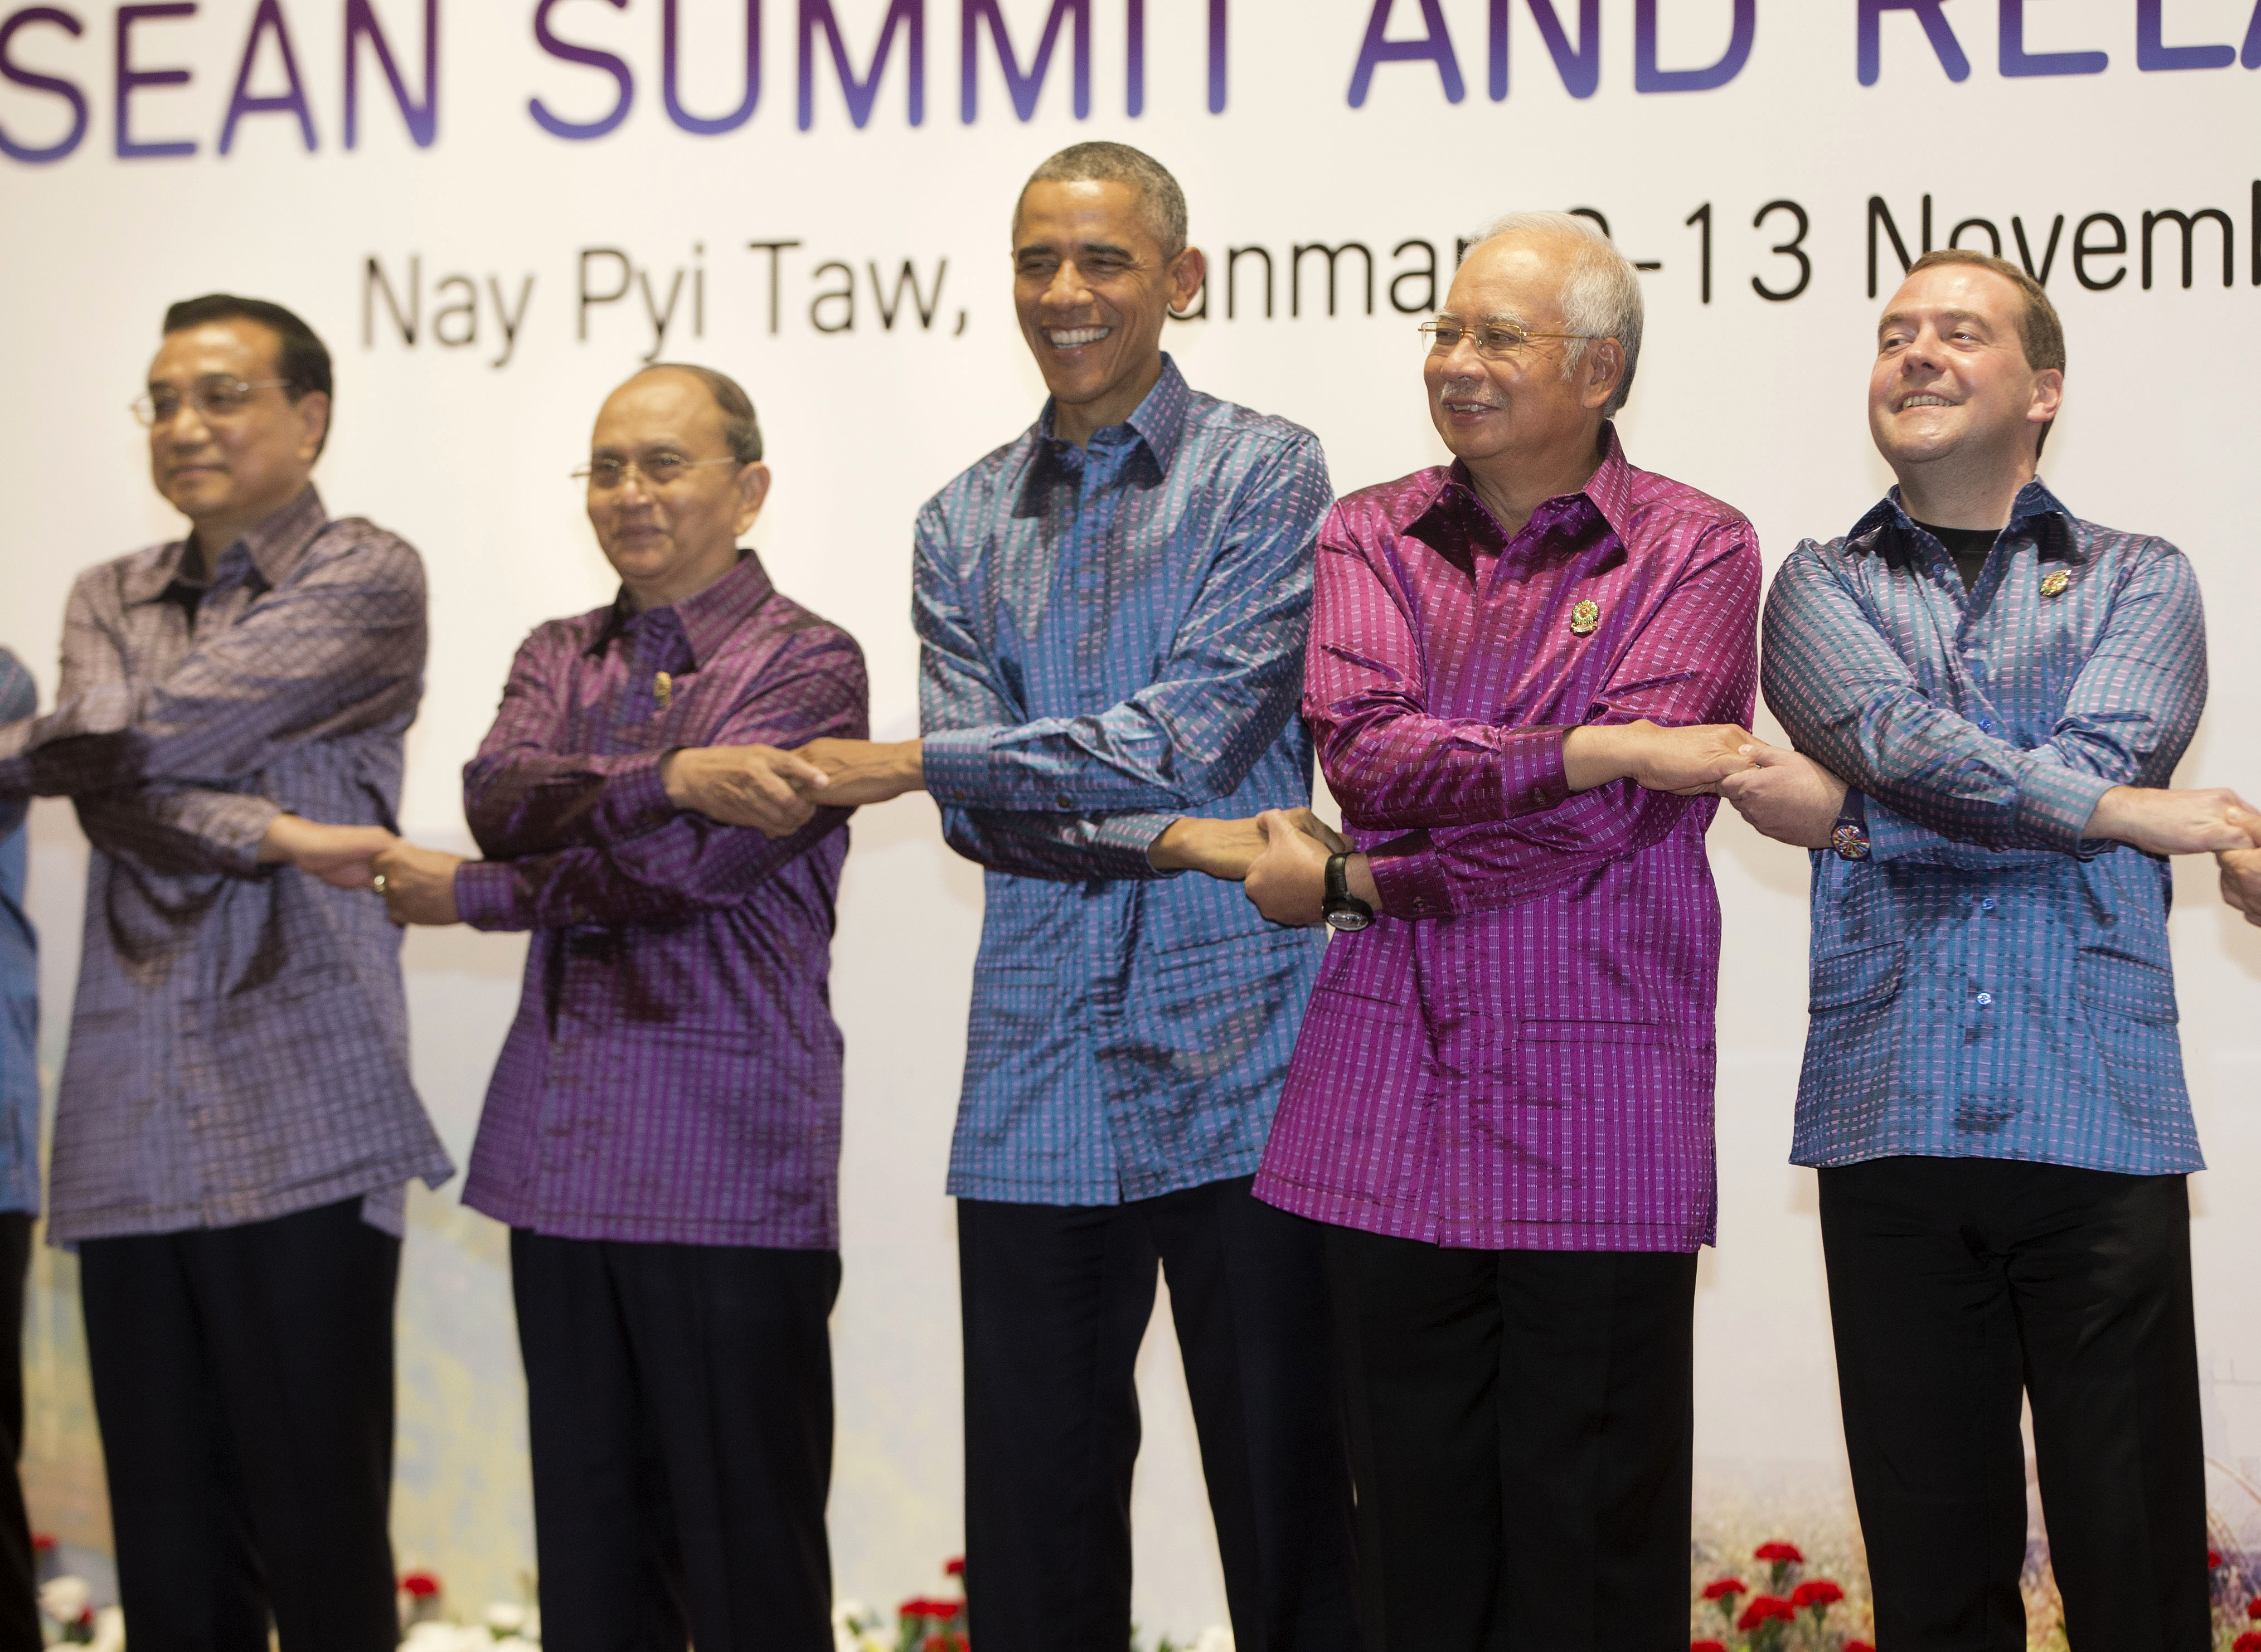 President Barack Obama and Myanmar President Thein Sein, second from left, pose during the East Asia Summit family photo at the Myanmar International Convention Center, Nov. 12, 2014, in Naypyitaw, Myanmar.